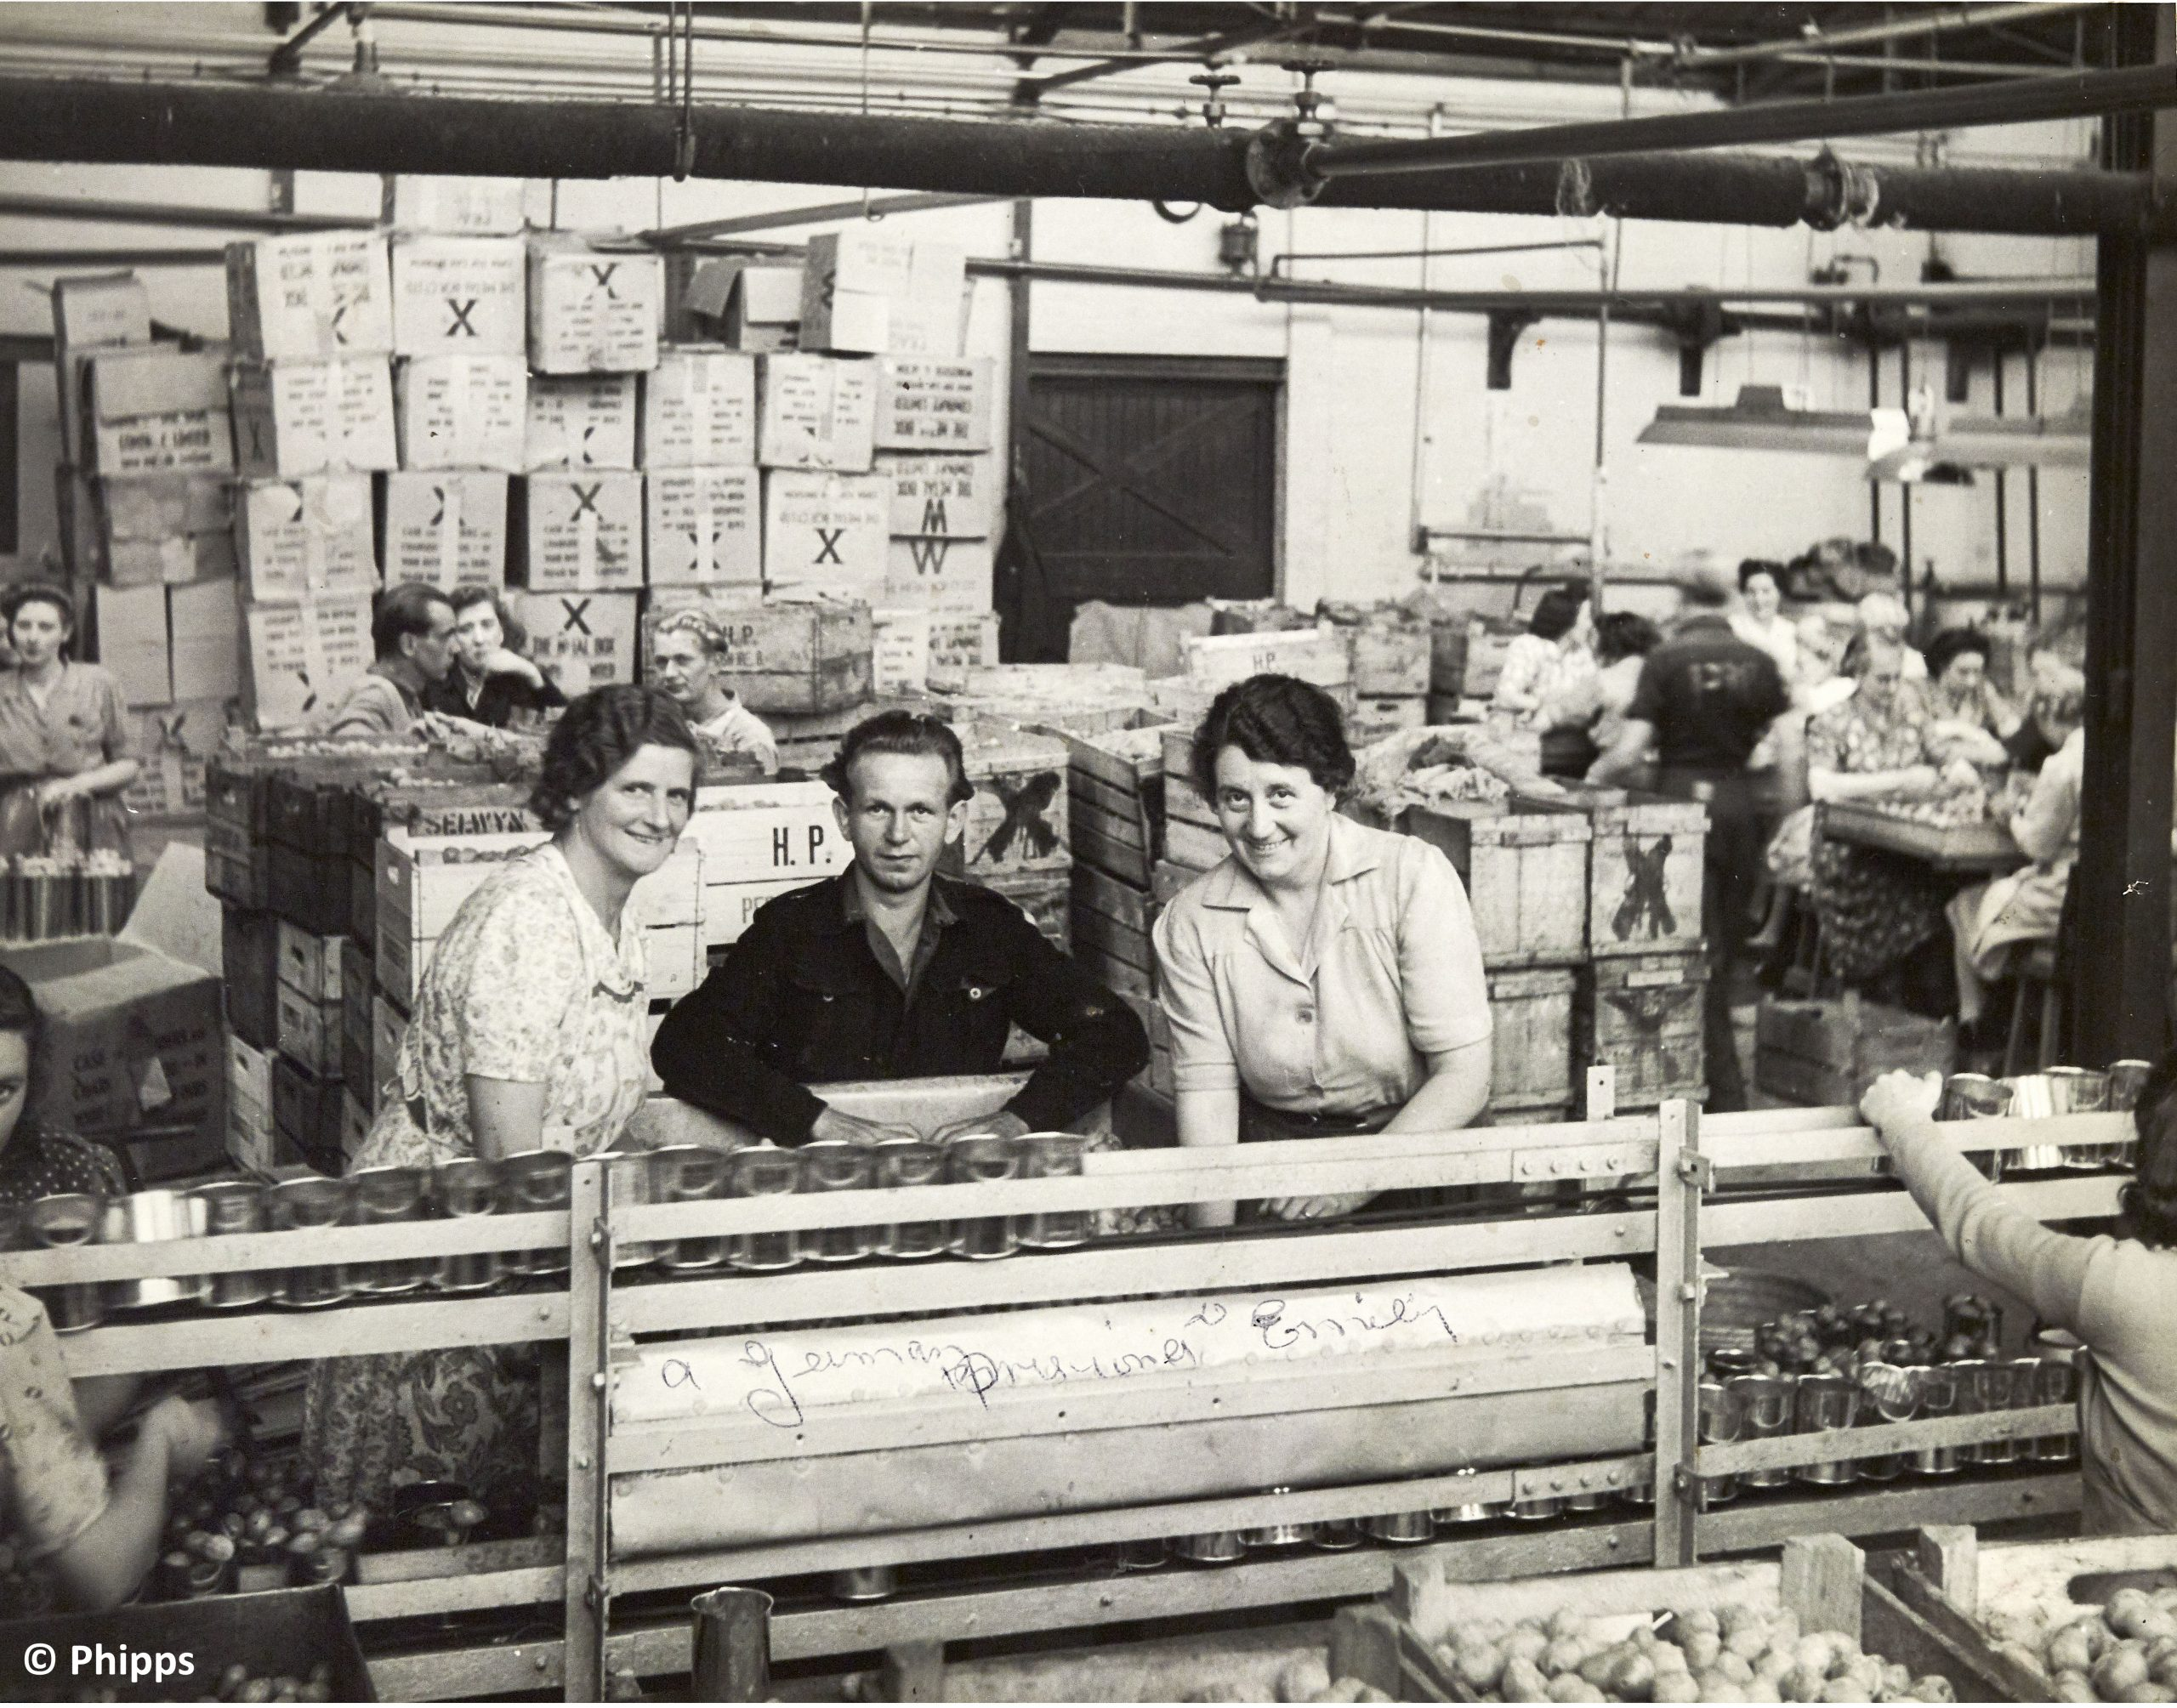 Inside Phipps canning factory